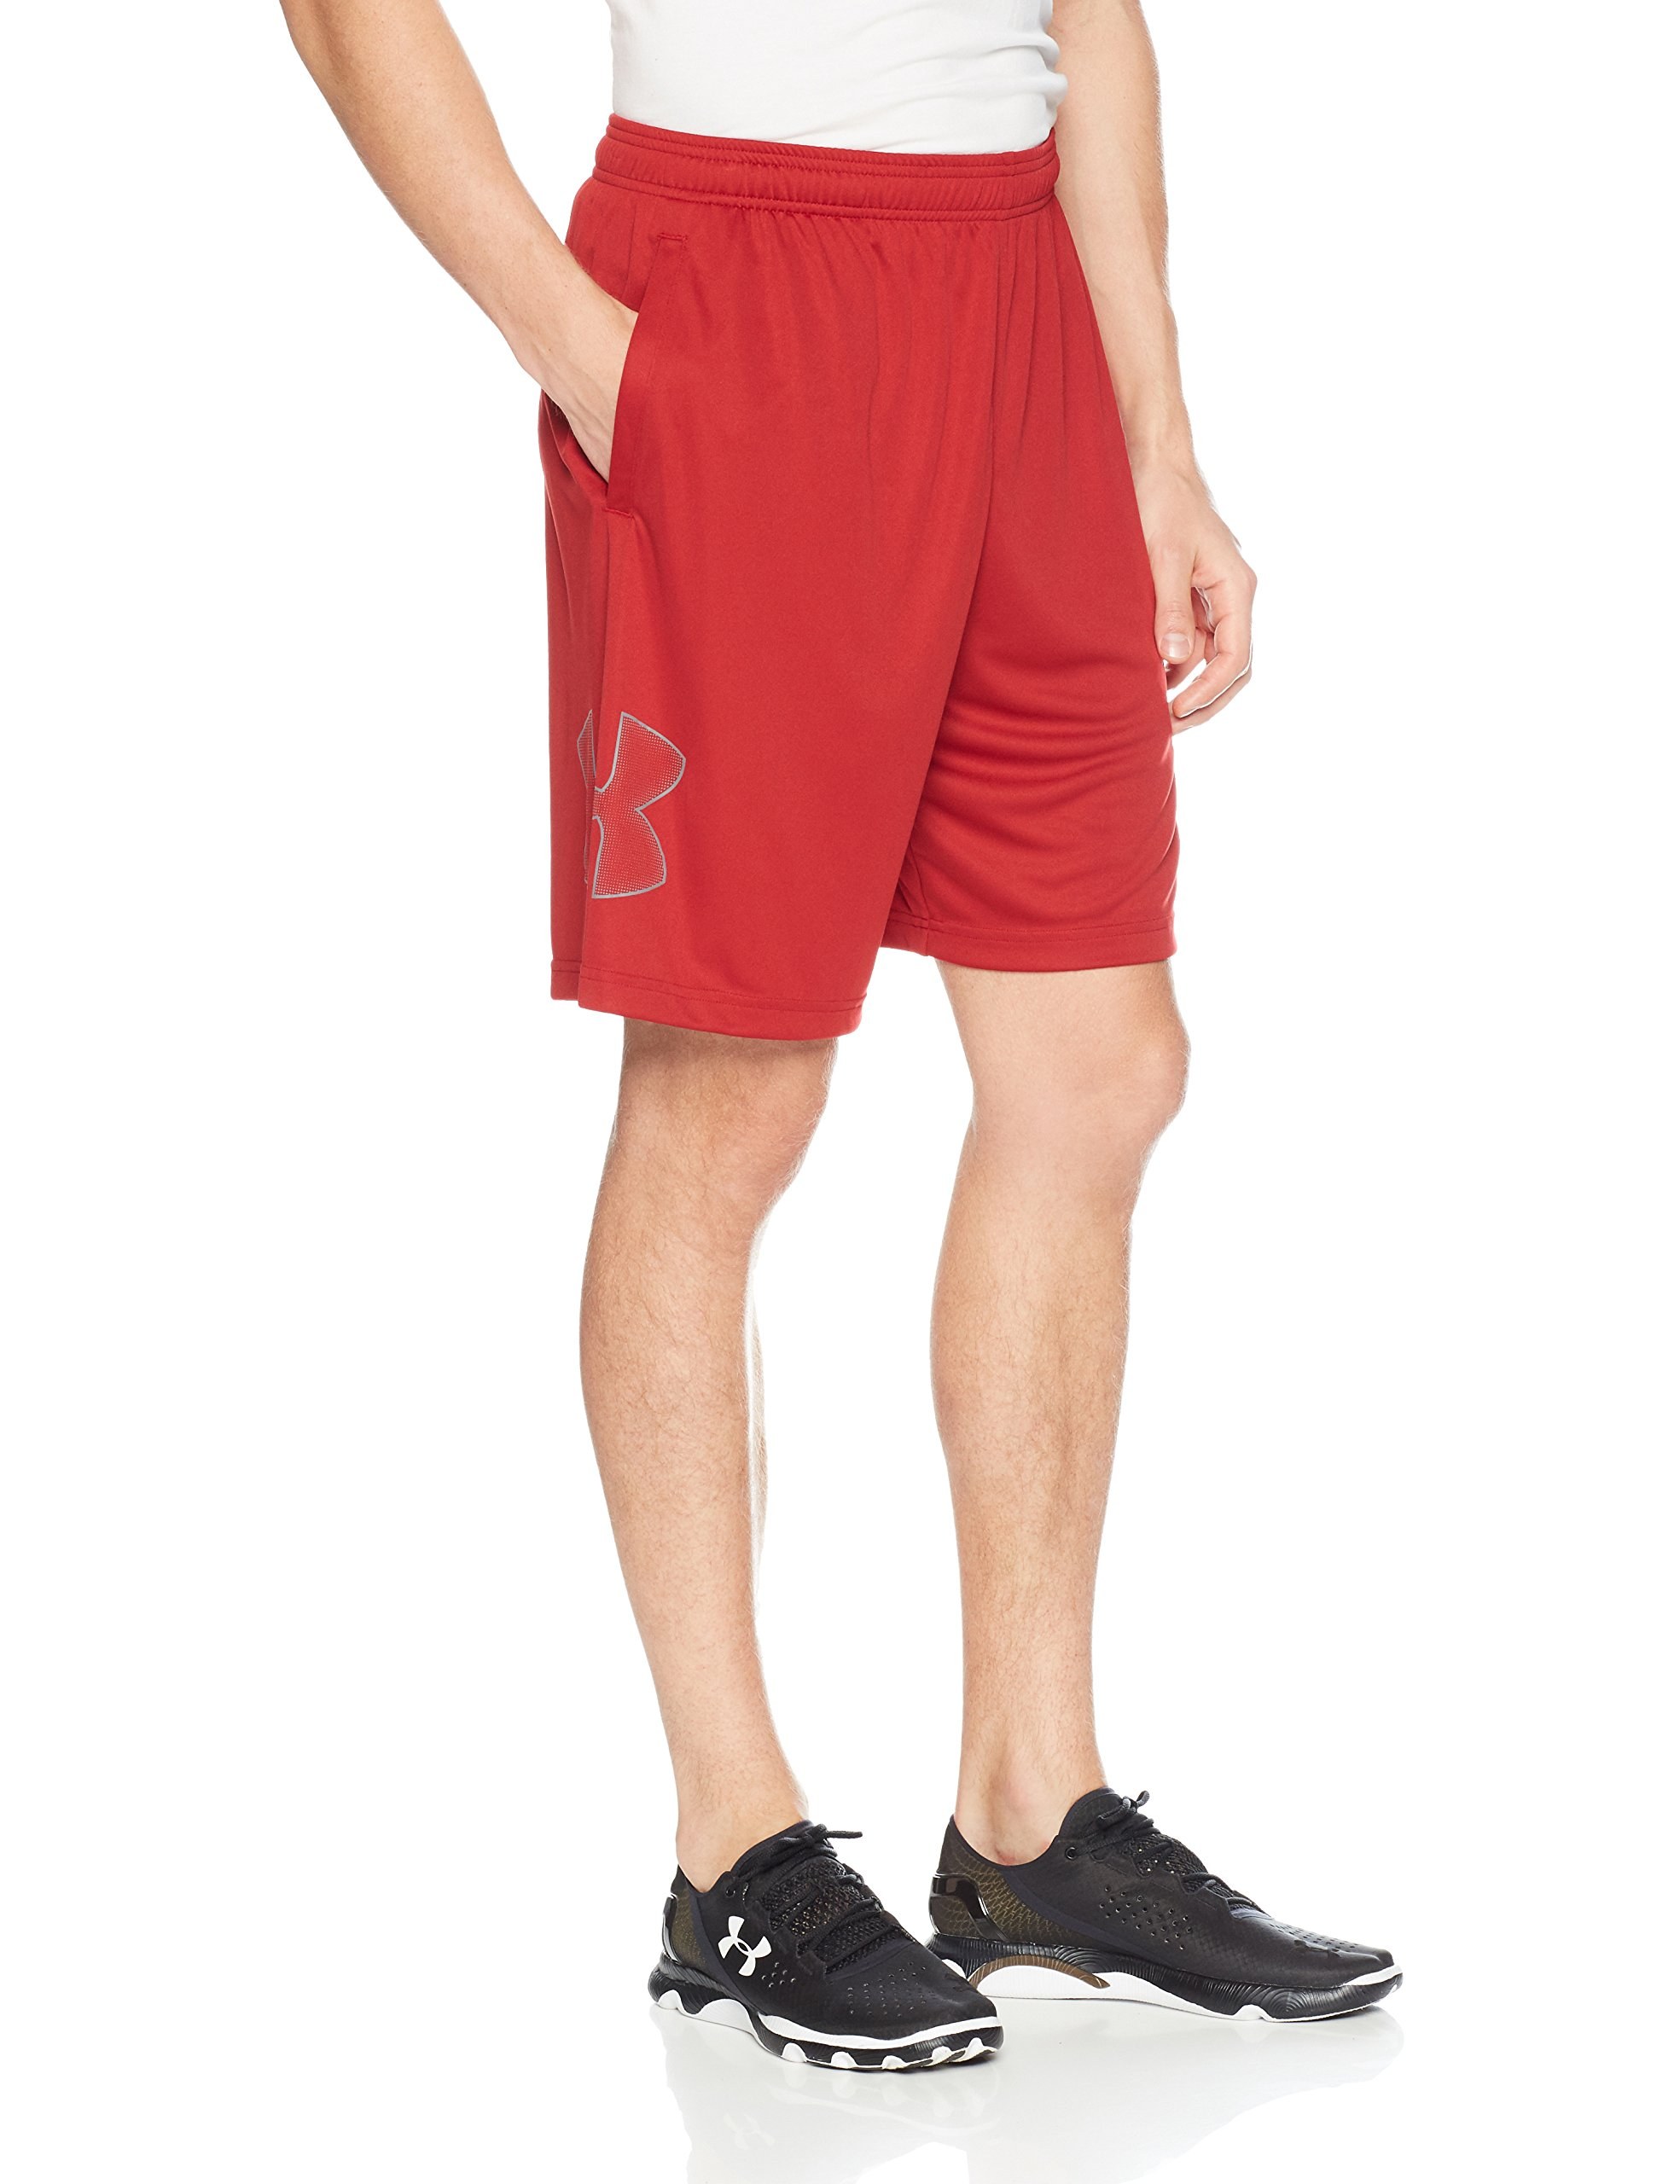 Under Armour mens Tech Graphic Shorts , Rapture Red (620)/Graphite, Small